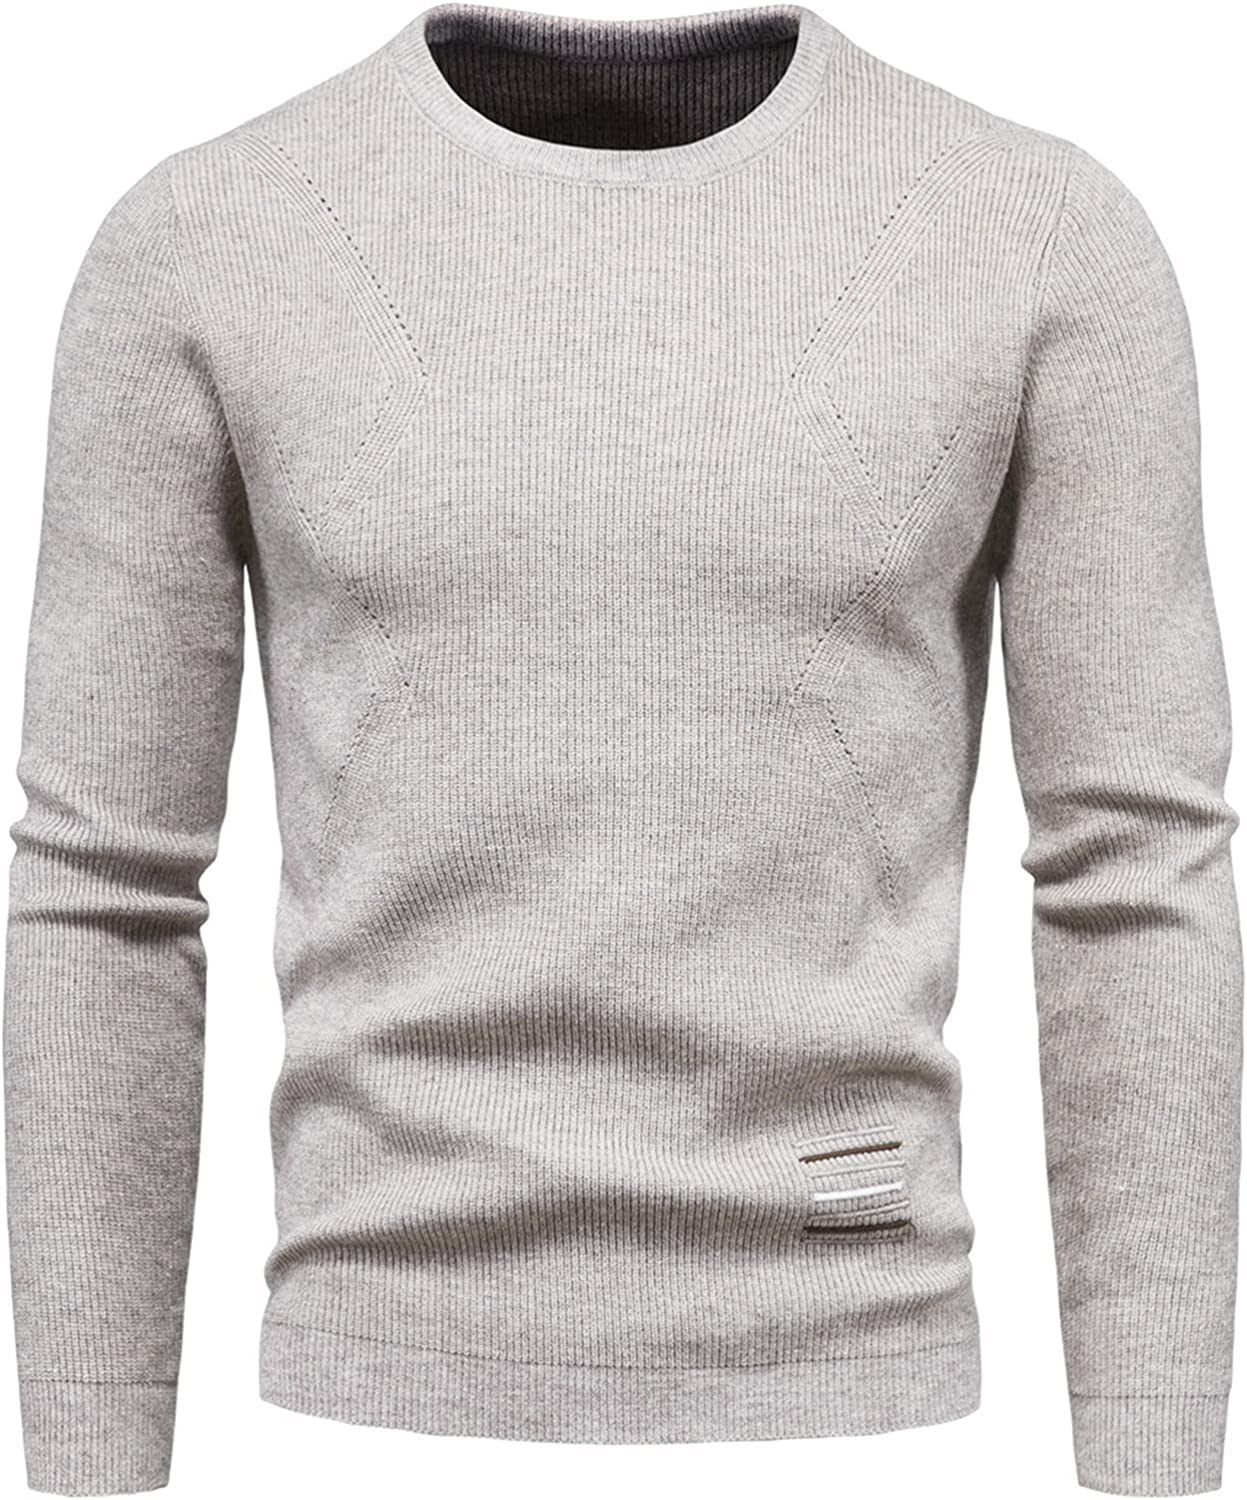 Mens Knitted Jumper,Crew Neck Sweater Basic Knit Pullover,Autumn Turtle Long Sleeve Winter Knitwear